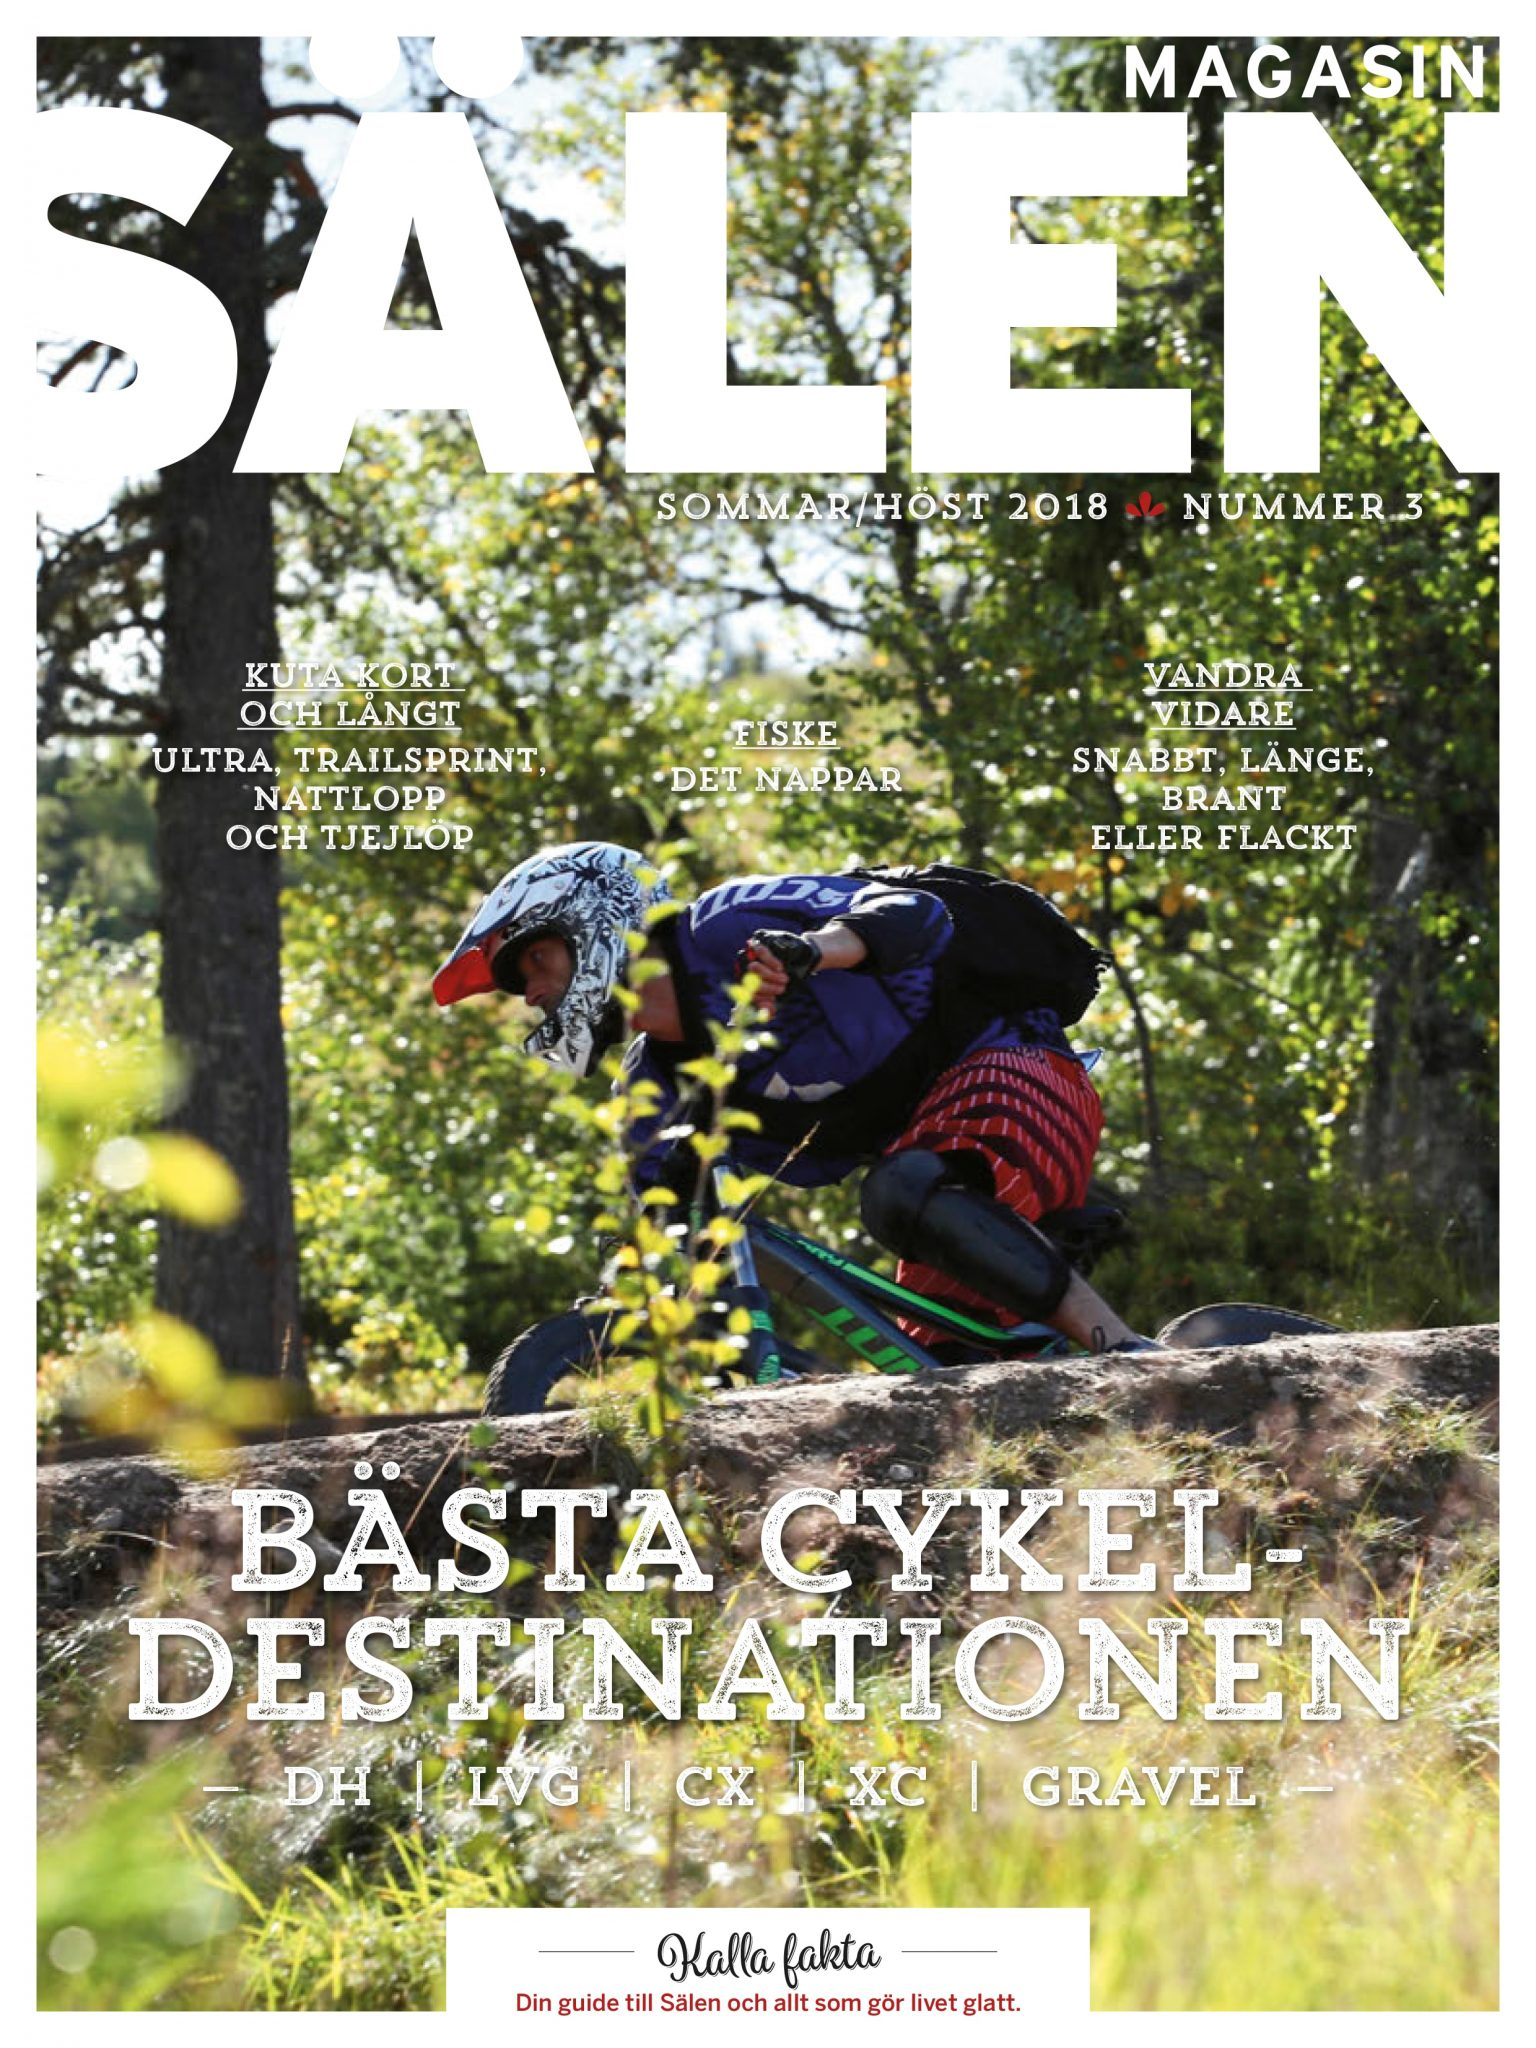 Magasin Cover page